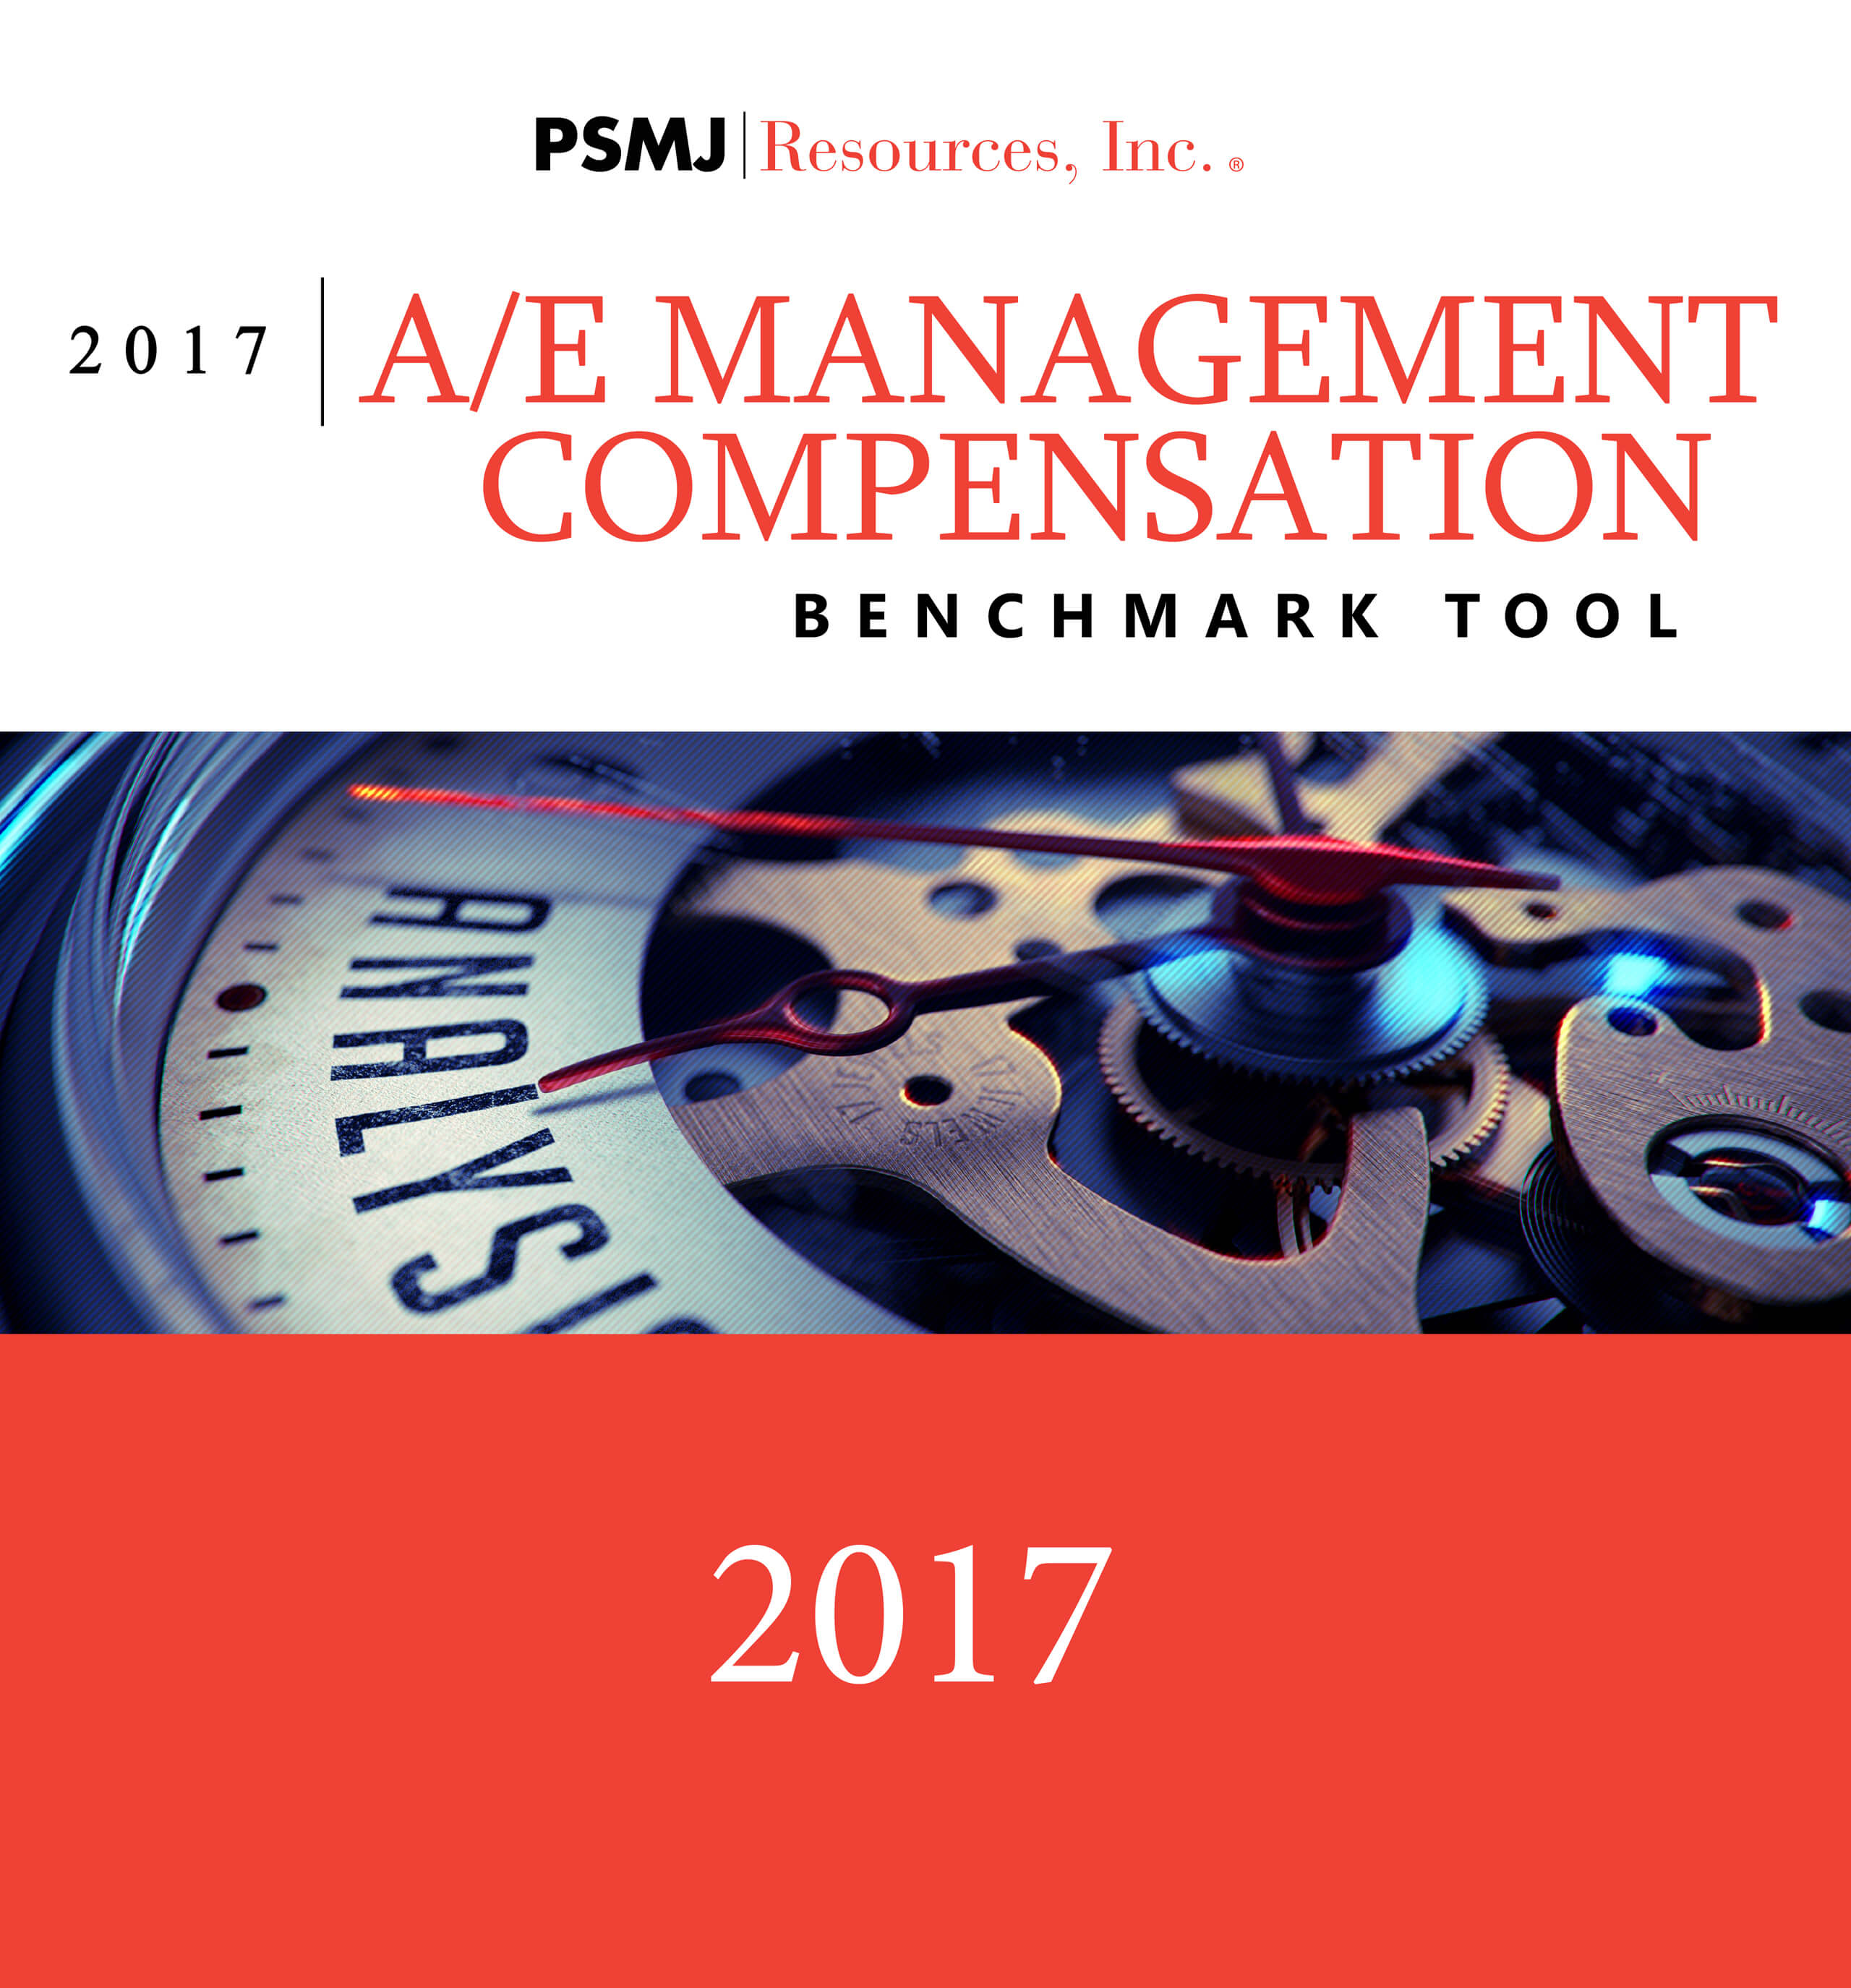 A/E Management Compensation Benchmark Tool